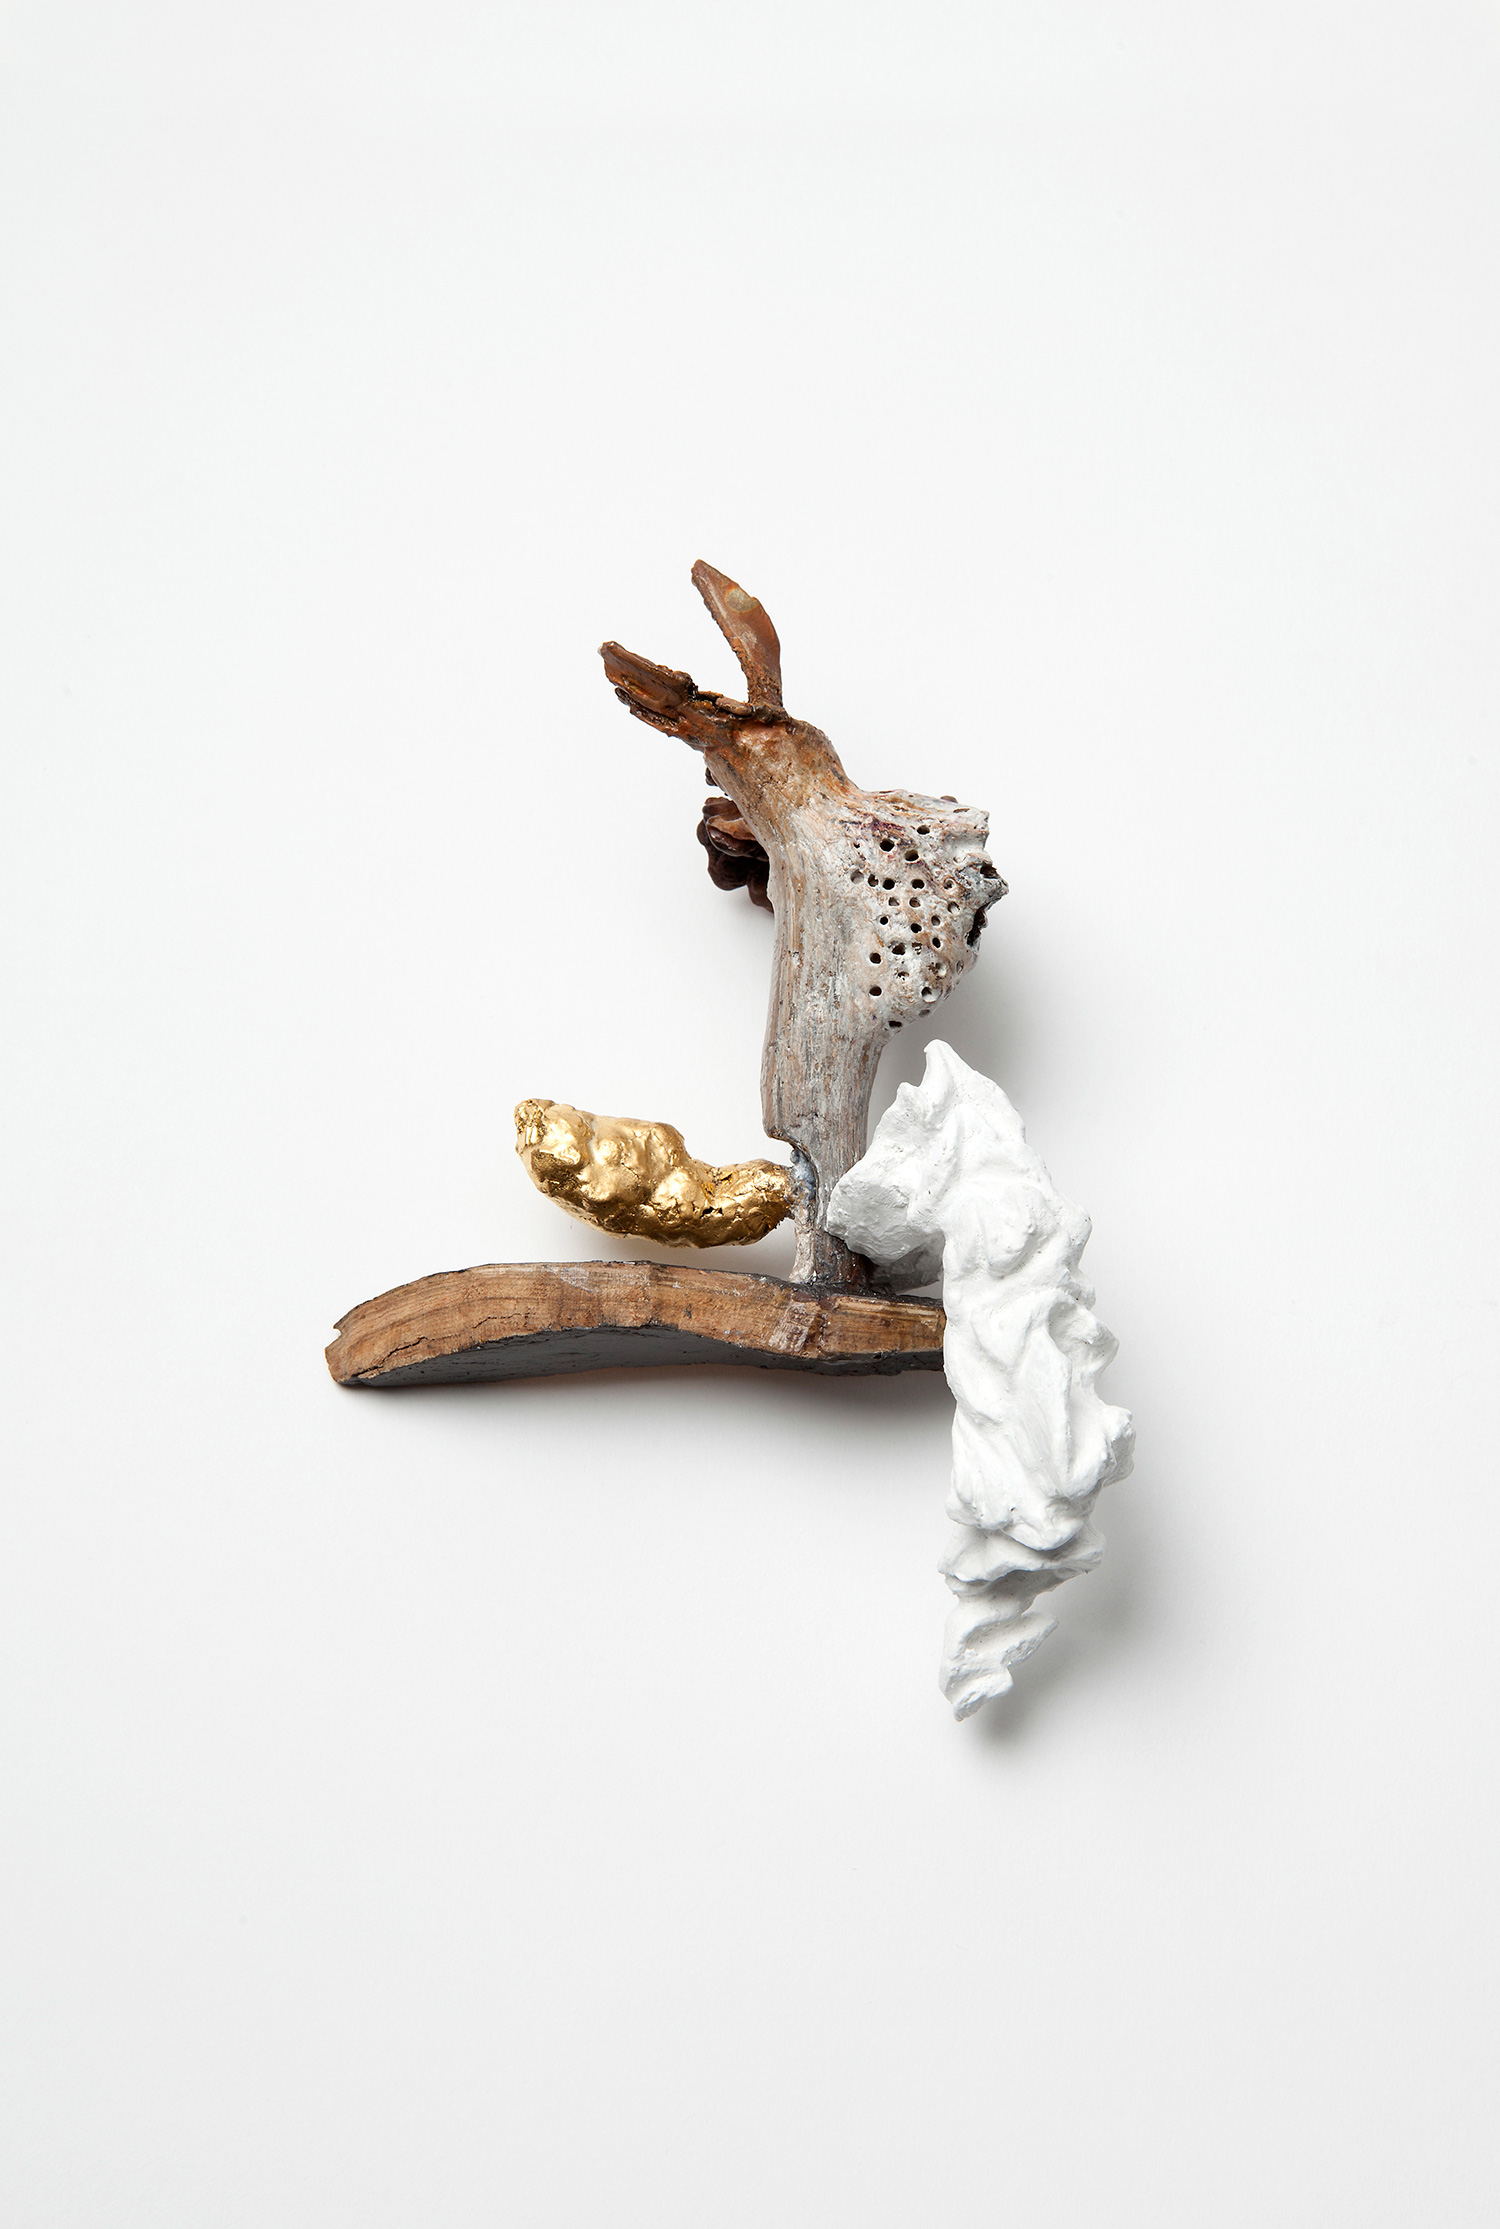 Untitled (Pieta) |  Brooch |  2015 |  Wood, color, graphite, silver, plastic, gold, gold leafs, stainless steel, copper  | 165X110X50 mm